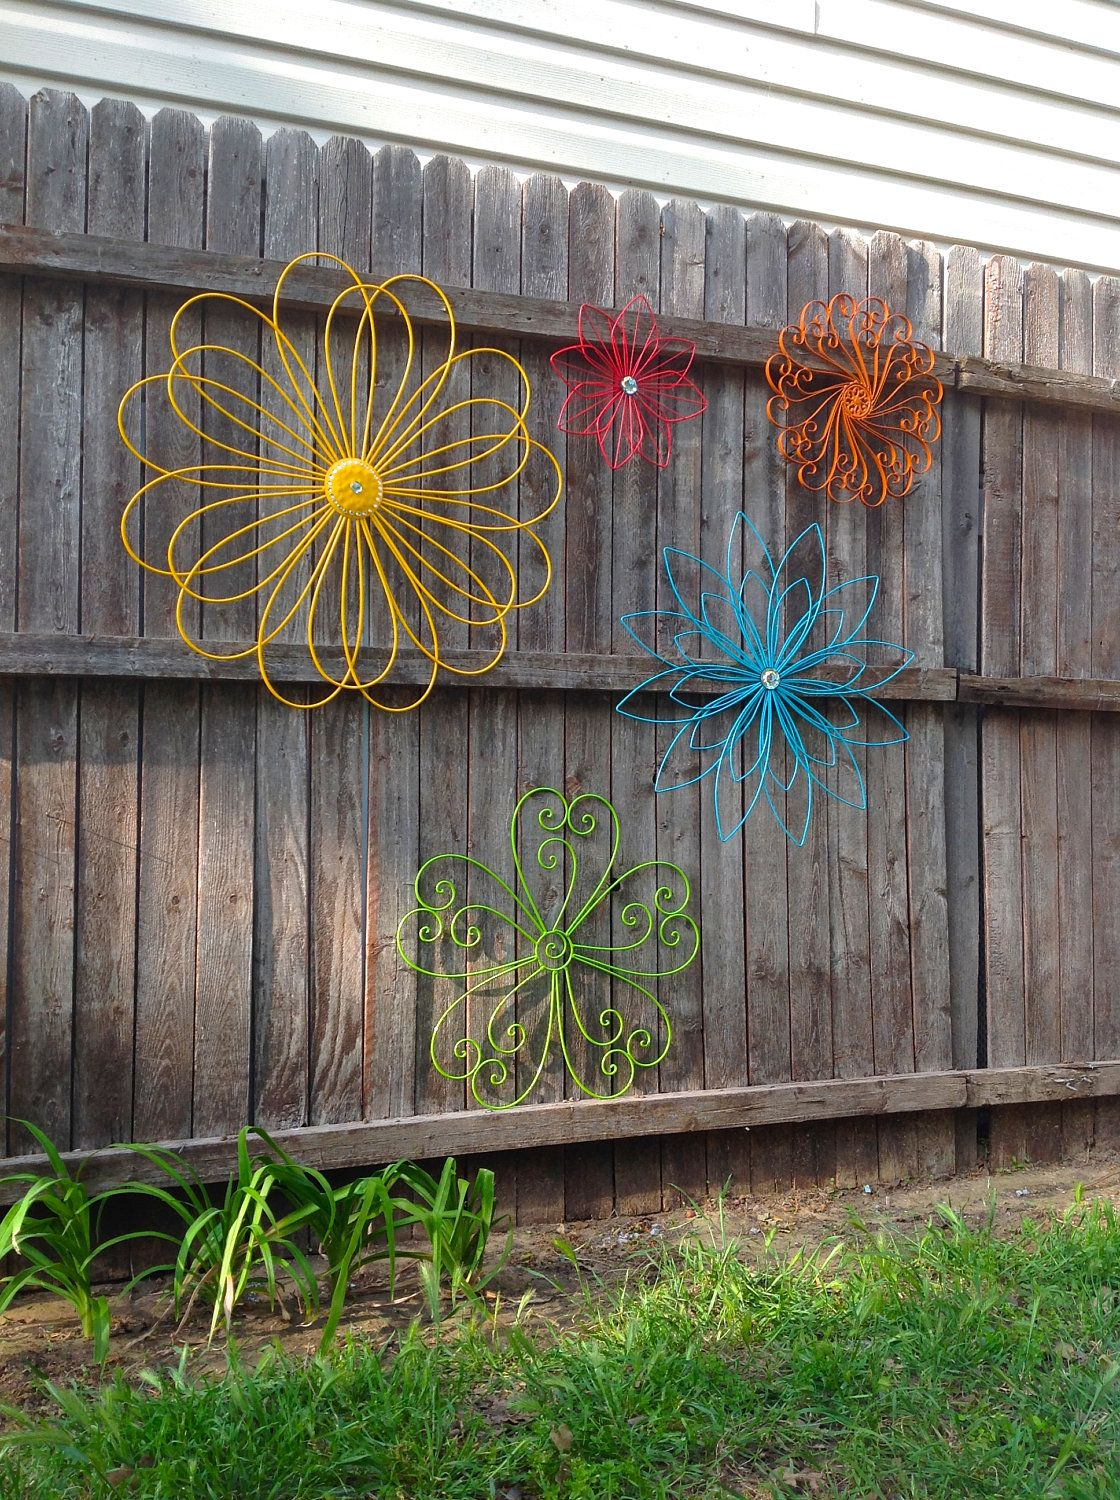 Jumbo Metal Flower Fence Art Oversized Eclectic Set Of 5 Metal Yard Art A Rainbow Of Colors Fence Art Metal Yard Art Flower Fence